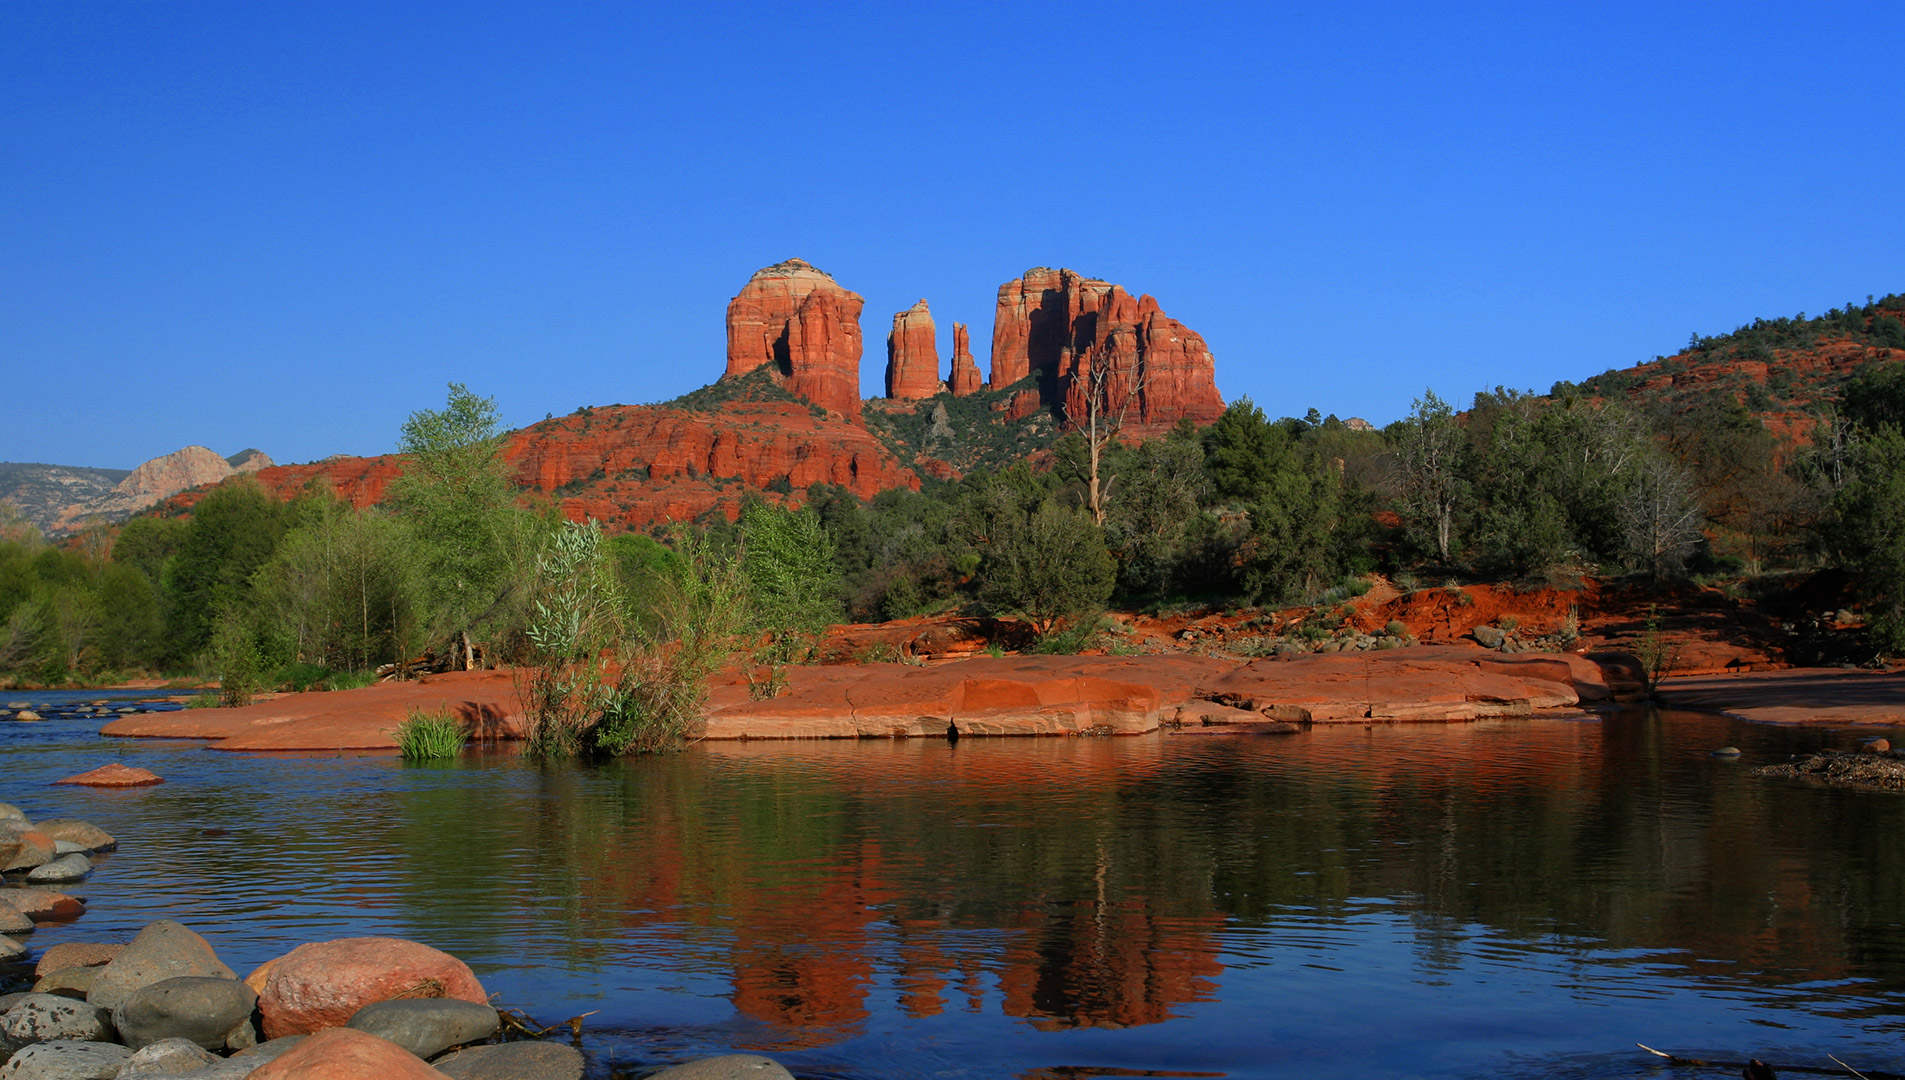 The tranquil waters of Oak Creek meander through Red Rock Crossing, while Cathedral Rock looms in the background